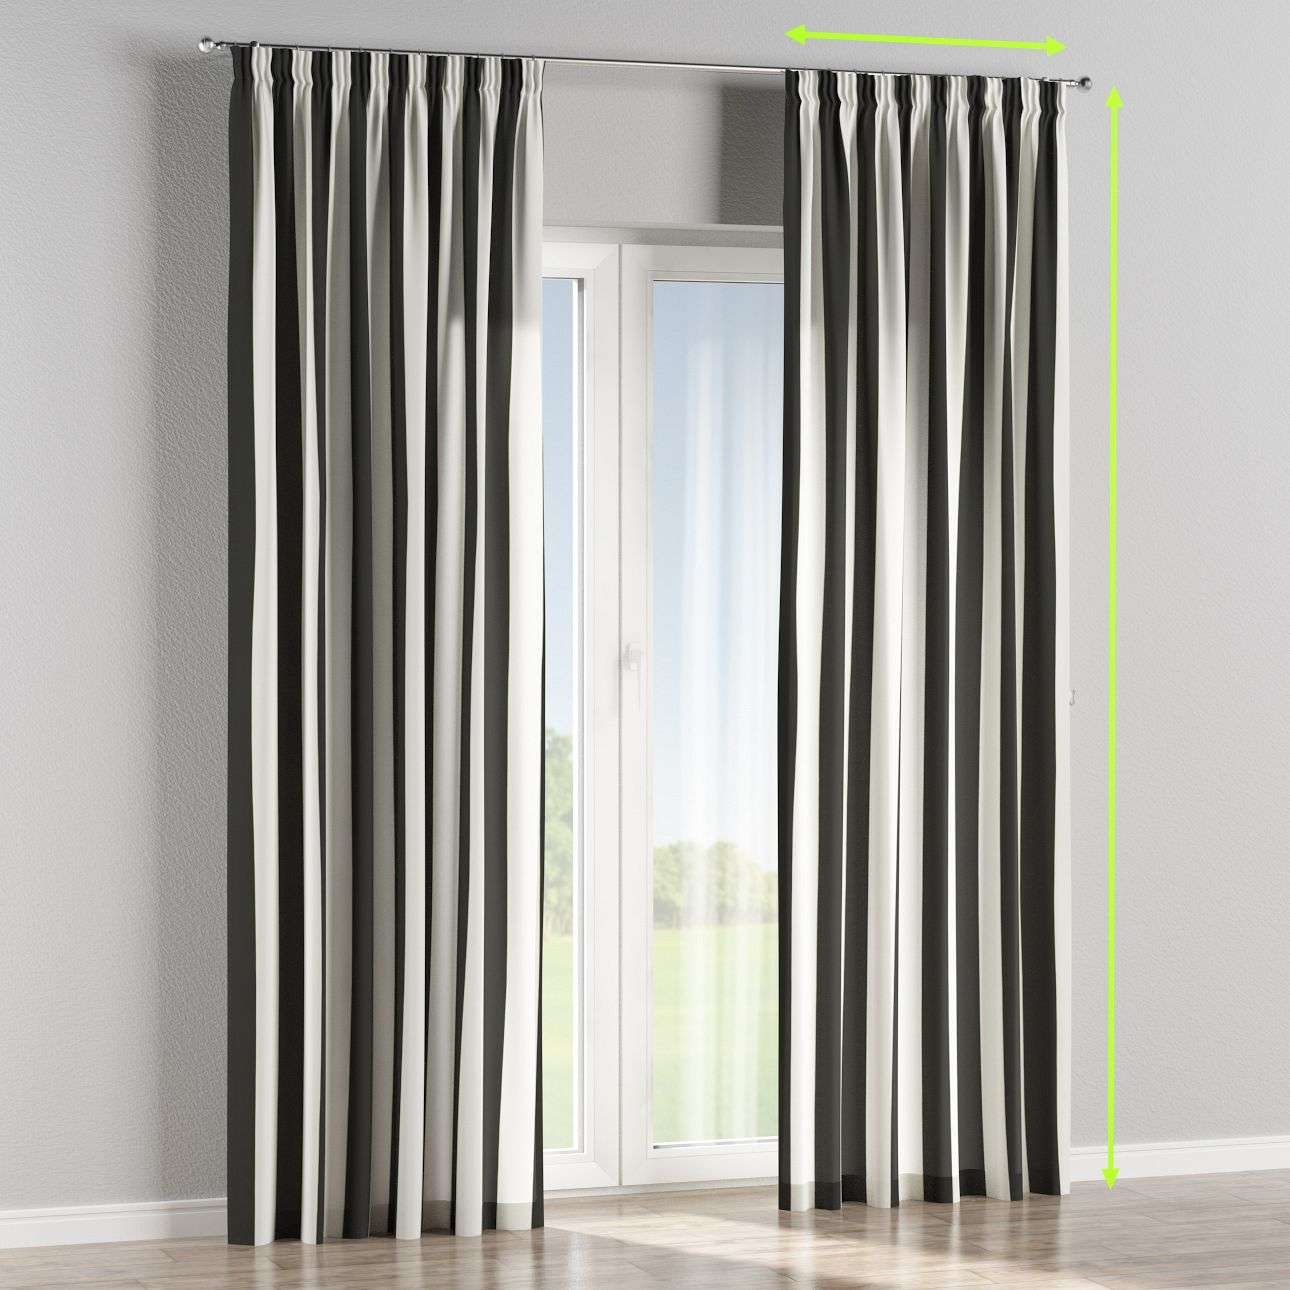 Pencil pleat lined curtains in collection Comic Book & Geo Prints, fabric: 137-53